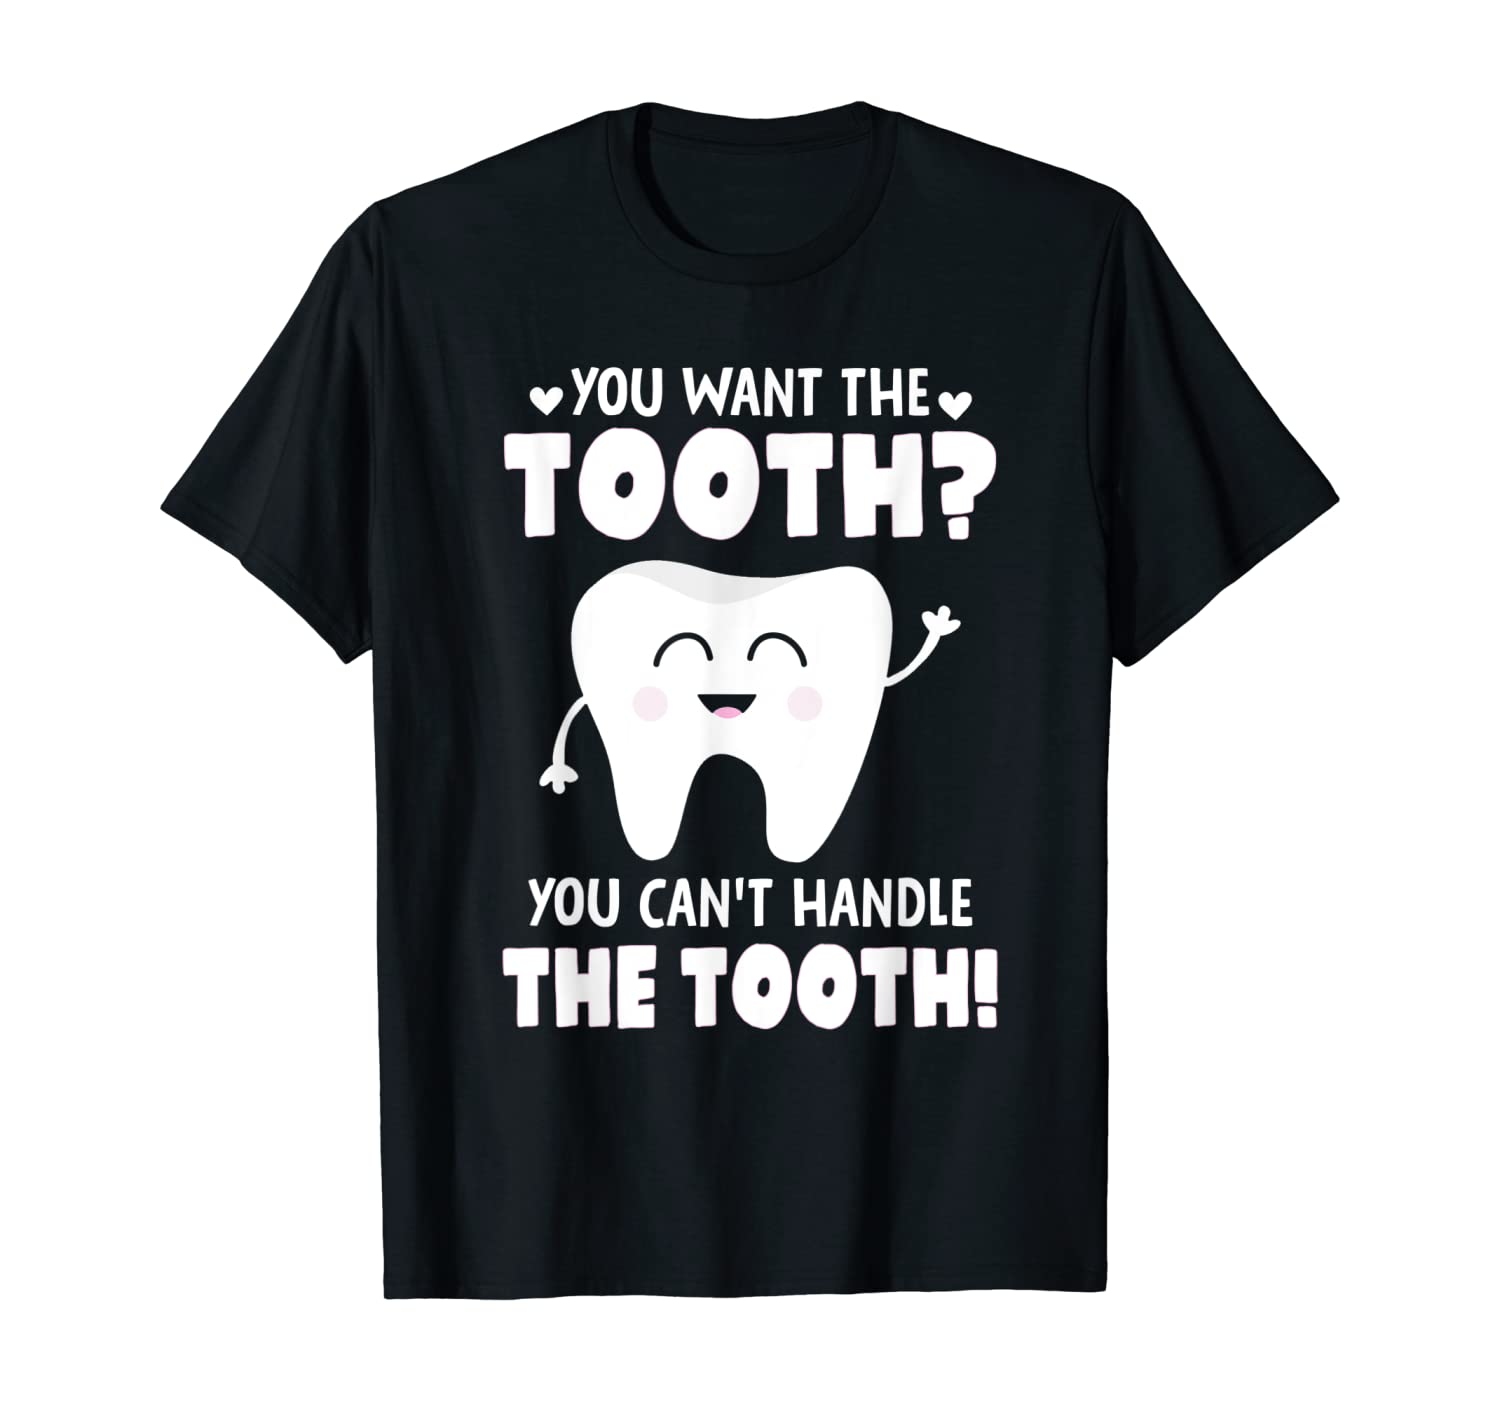 Funny Dentist Pun Humor Shirt for DDS or Hygienists Gift T-Shirt